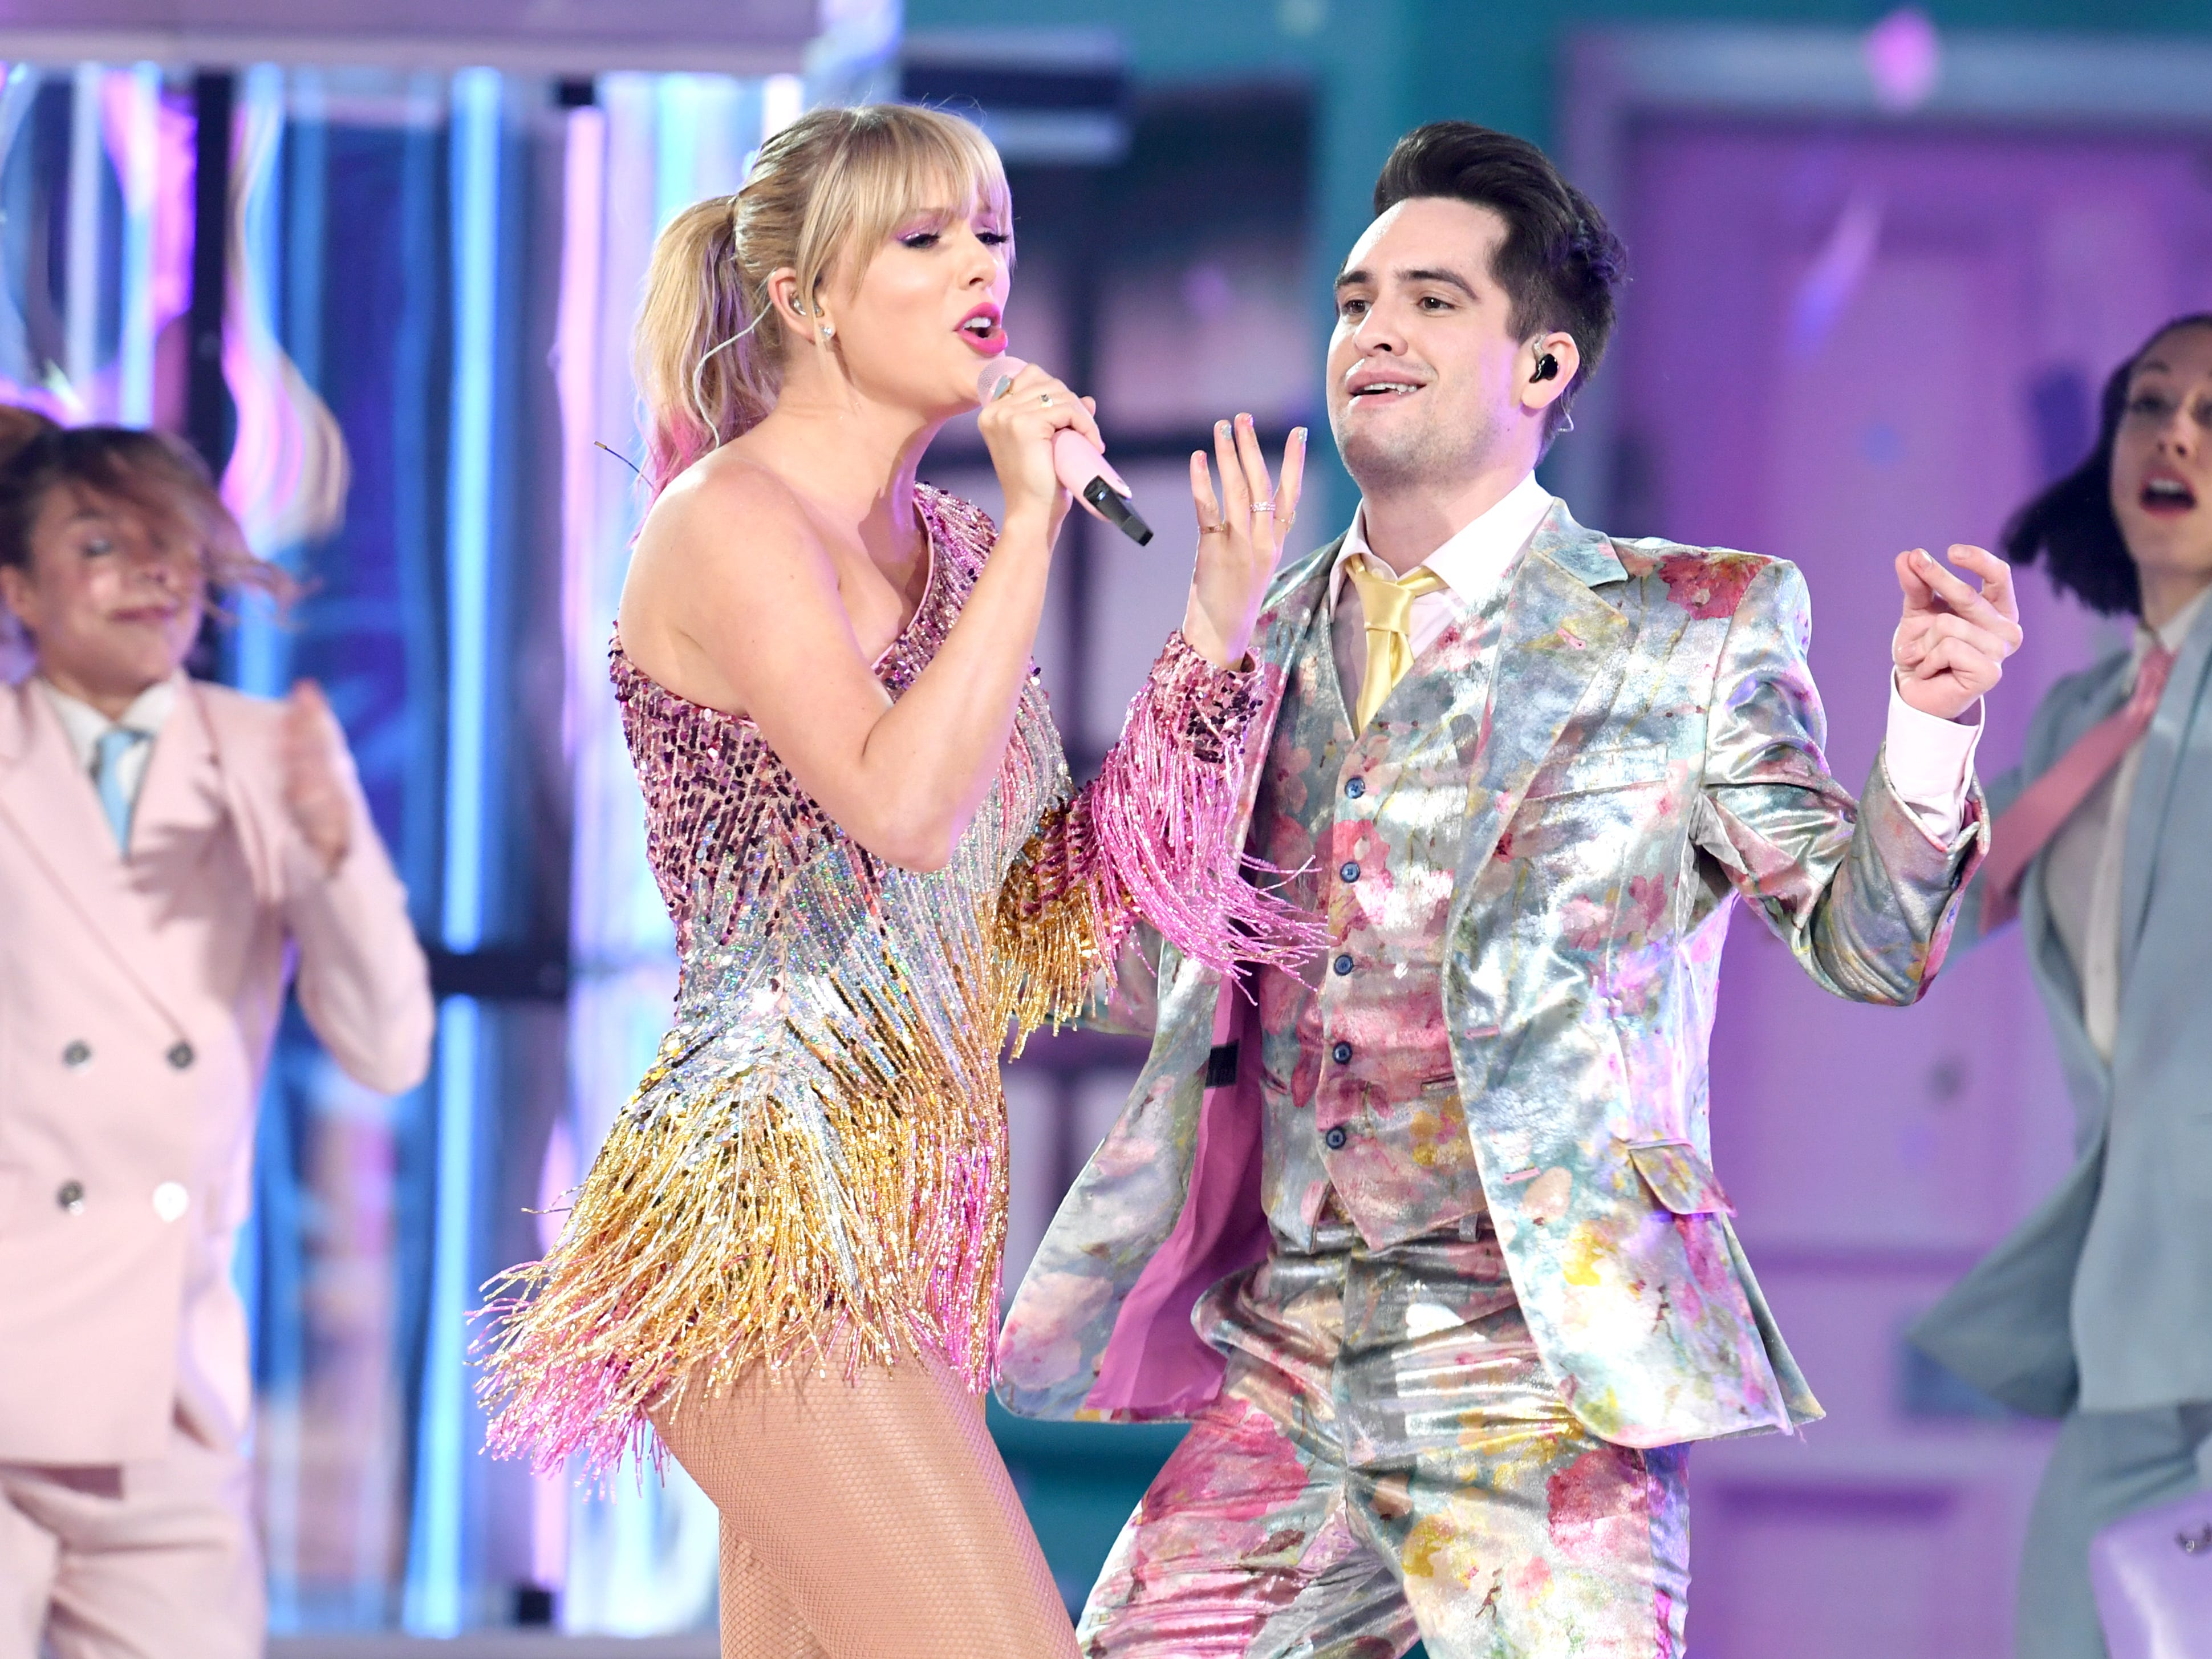 Taylor Swift and Brendon Urie of Panic! at the Disco perform onstage during the 2019 Billboard Music Awards at MGM Grand Garden Arena on May 01, 2019 in Las Vegas, Nevada.